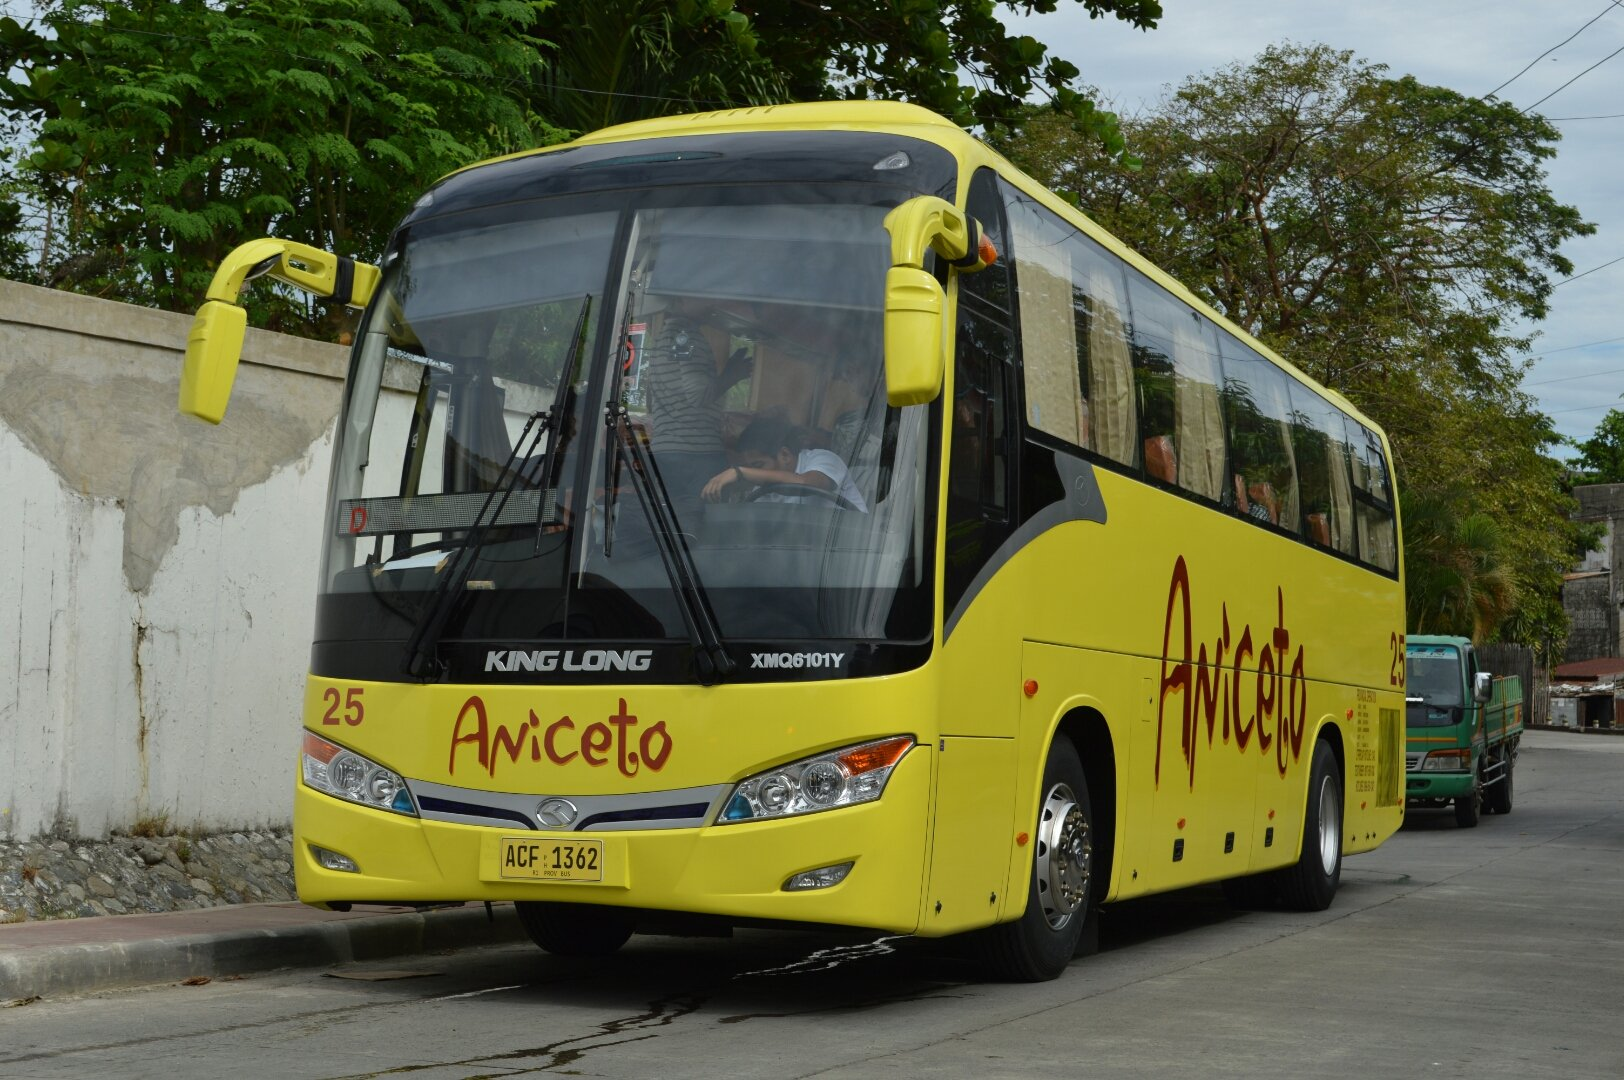 aniceto-bus-lines-booking.jpg